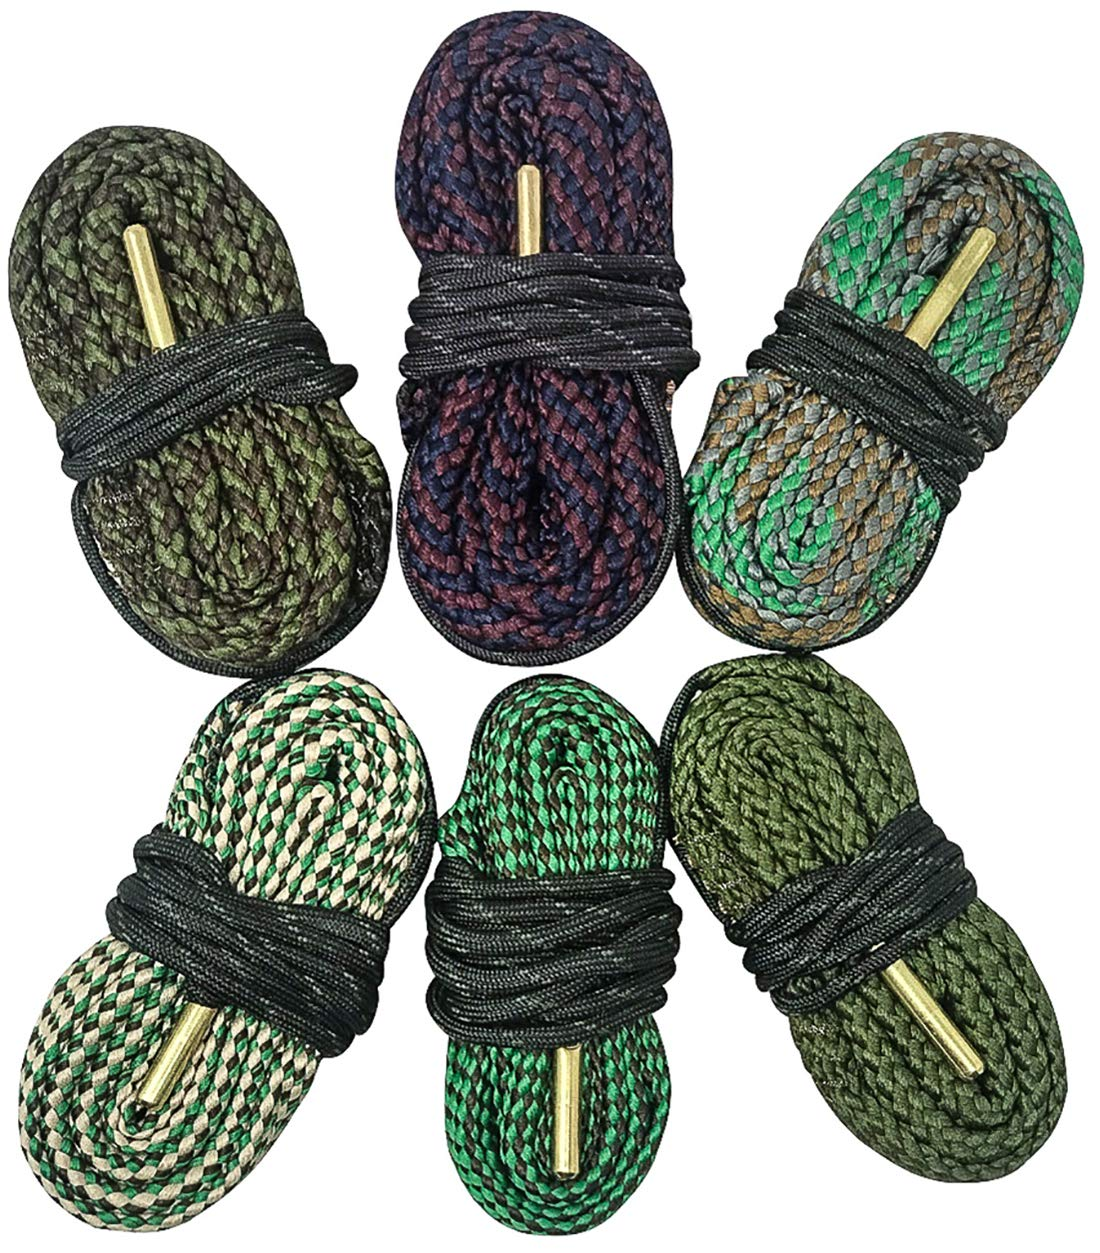 Big Country Wholesale Cobra 6 Pack Bore Cleaning Snakes | 6 Count Bore Snakes 223 22 5.56 9mm 308 45/70 .45 .44 380 .40 .41 and More by Big Country Wholesale